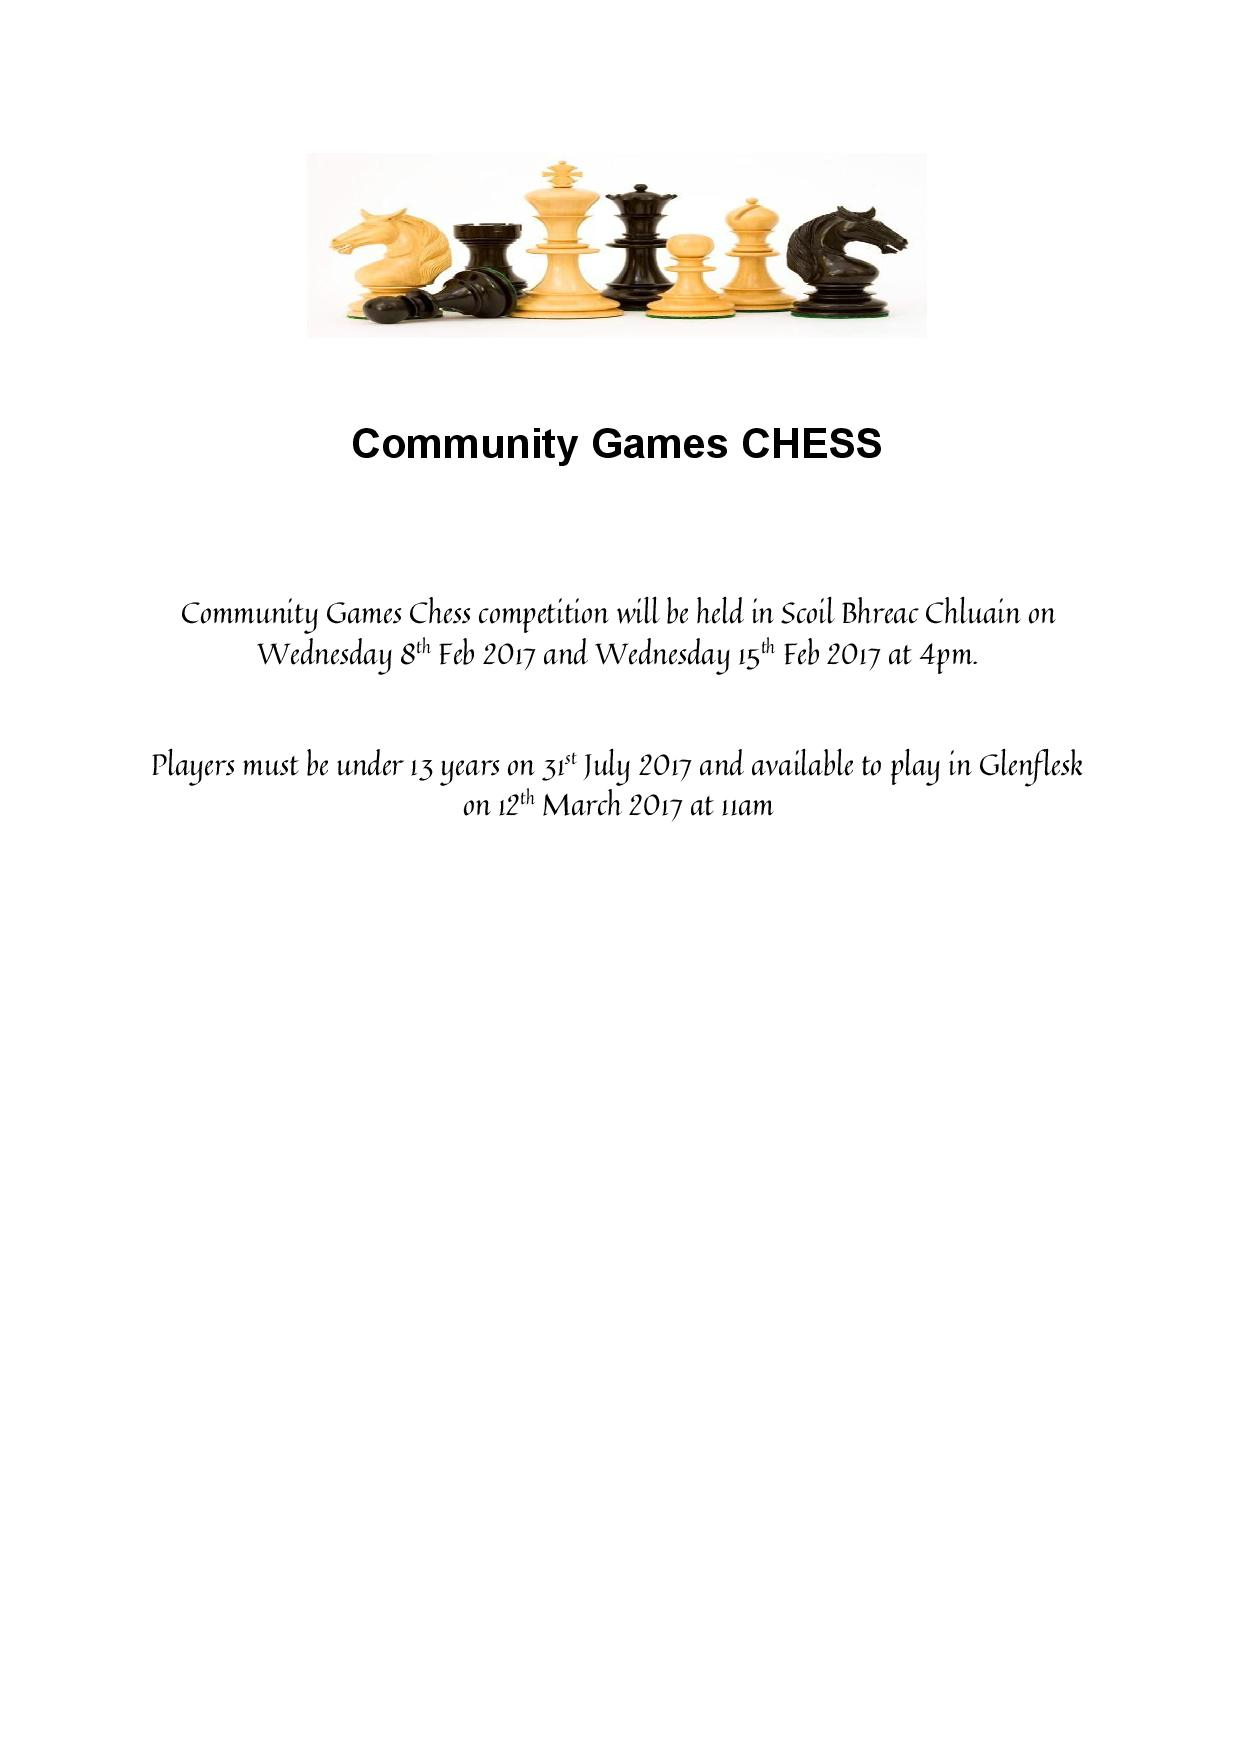 downloadcommunitygames.docx-page-001